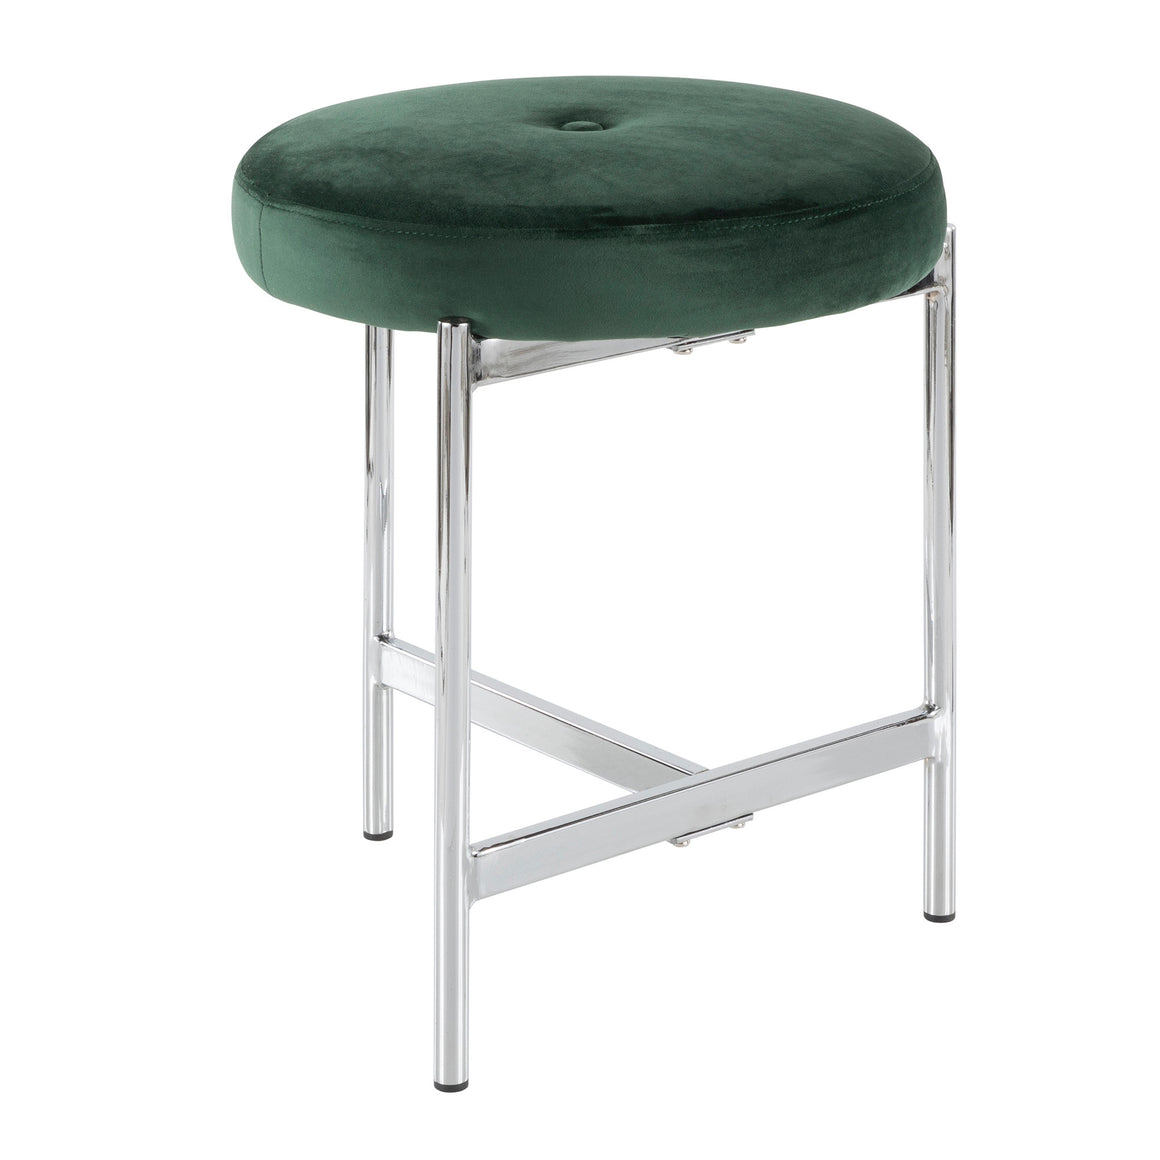 Chloe Contemporary Vanity Stool in Chrome and Green Velvet by LumiSource